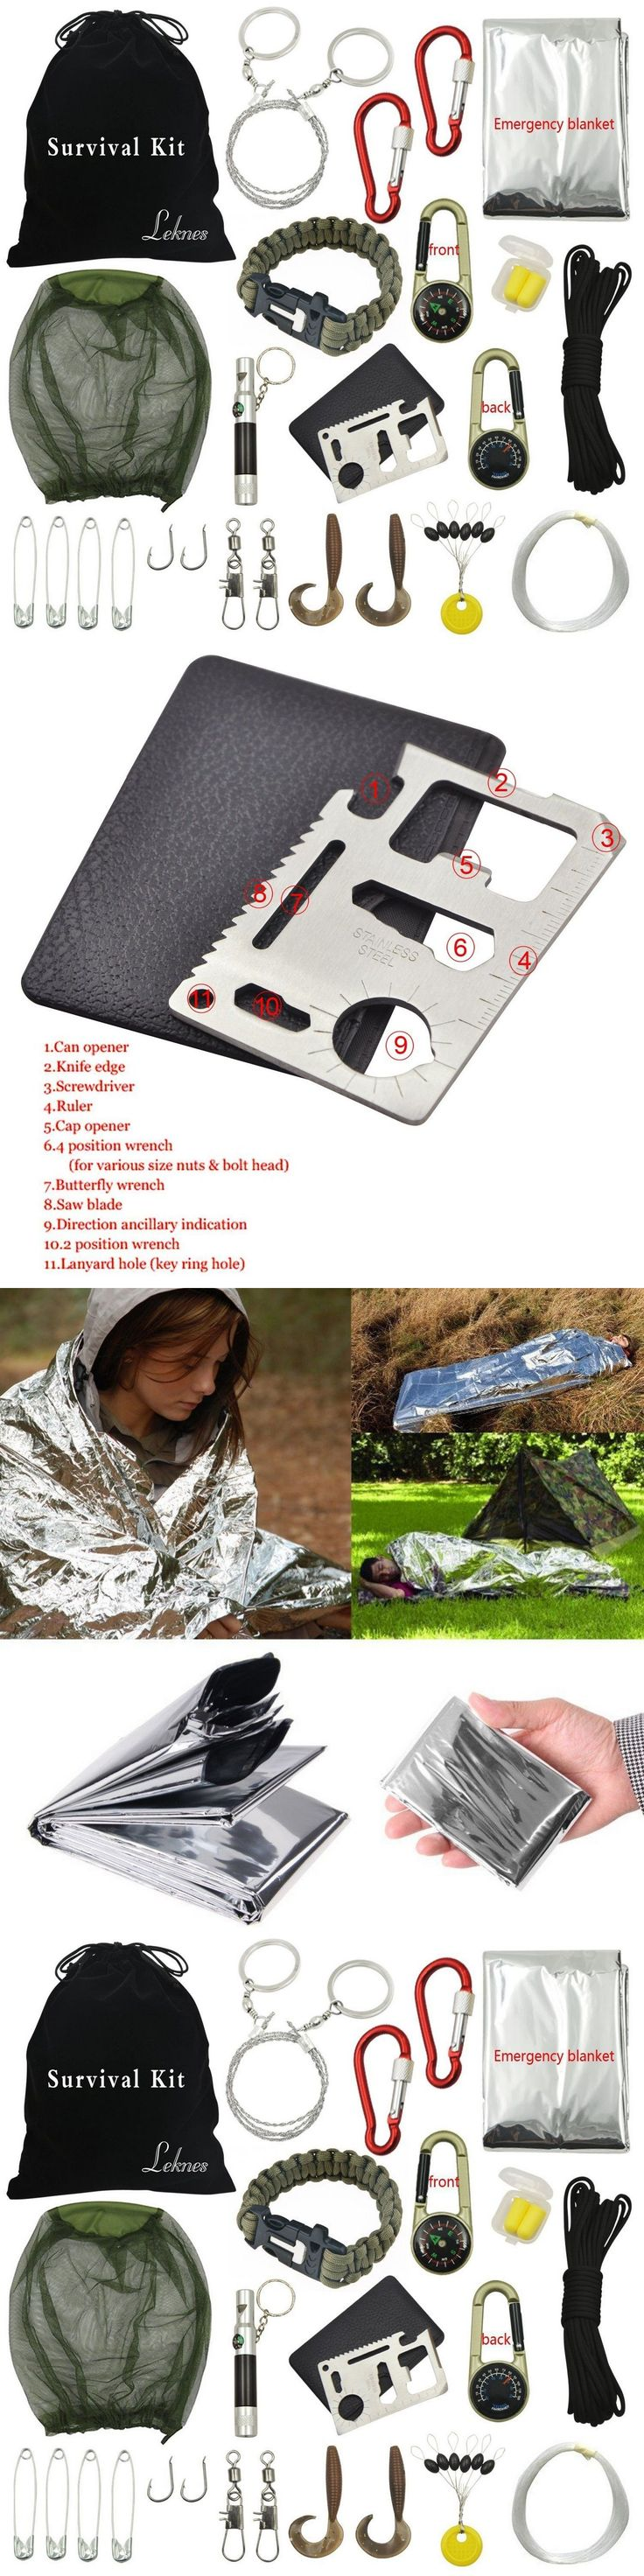 Other Emergency Gear 181415: Outdoor Survival Kit Camping Emergency Gear Pocket Tools Card Sos Help Hike New BUY IT NOW ONLY: $33.98